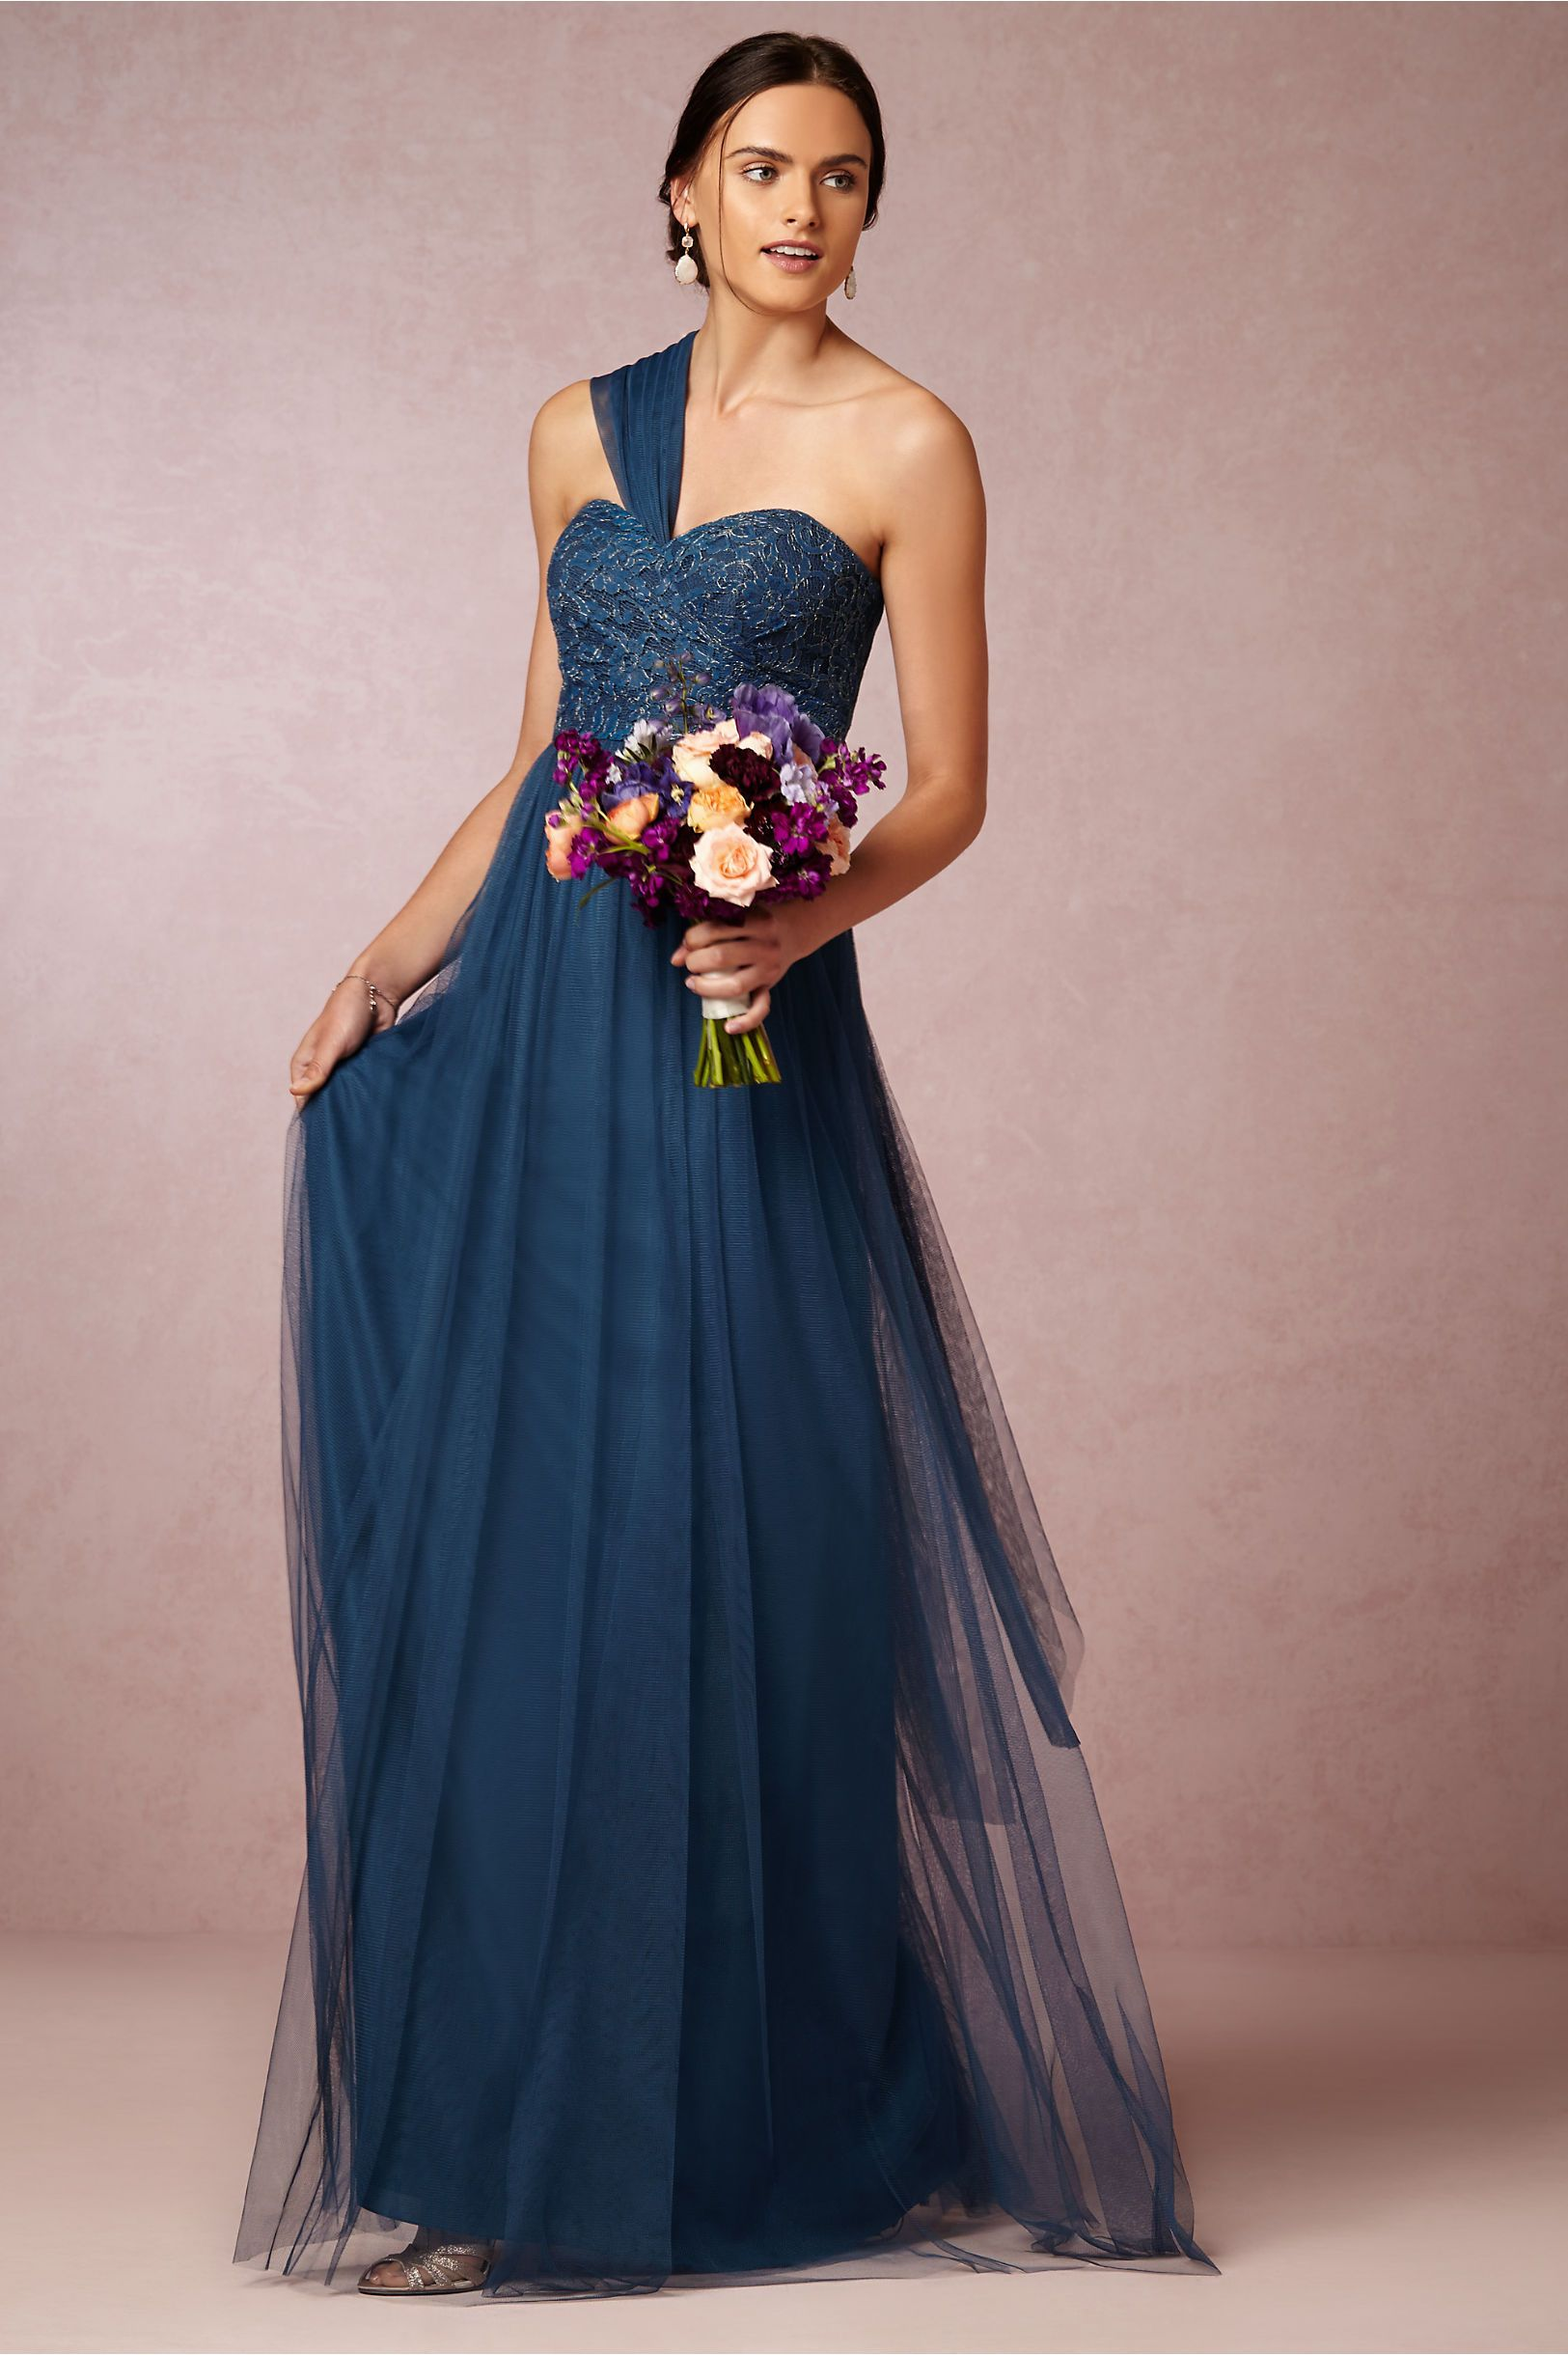 Juliette bridesmaids dress in lapis blue by jenny yoo a bhldn 2015 blue zipper a line floor length bridesmaid dresses by okdress uk ombrellifo Image collections